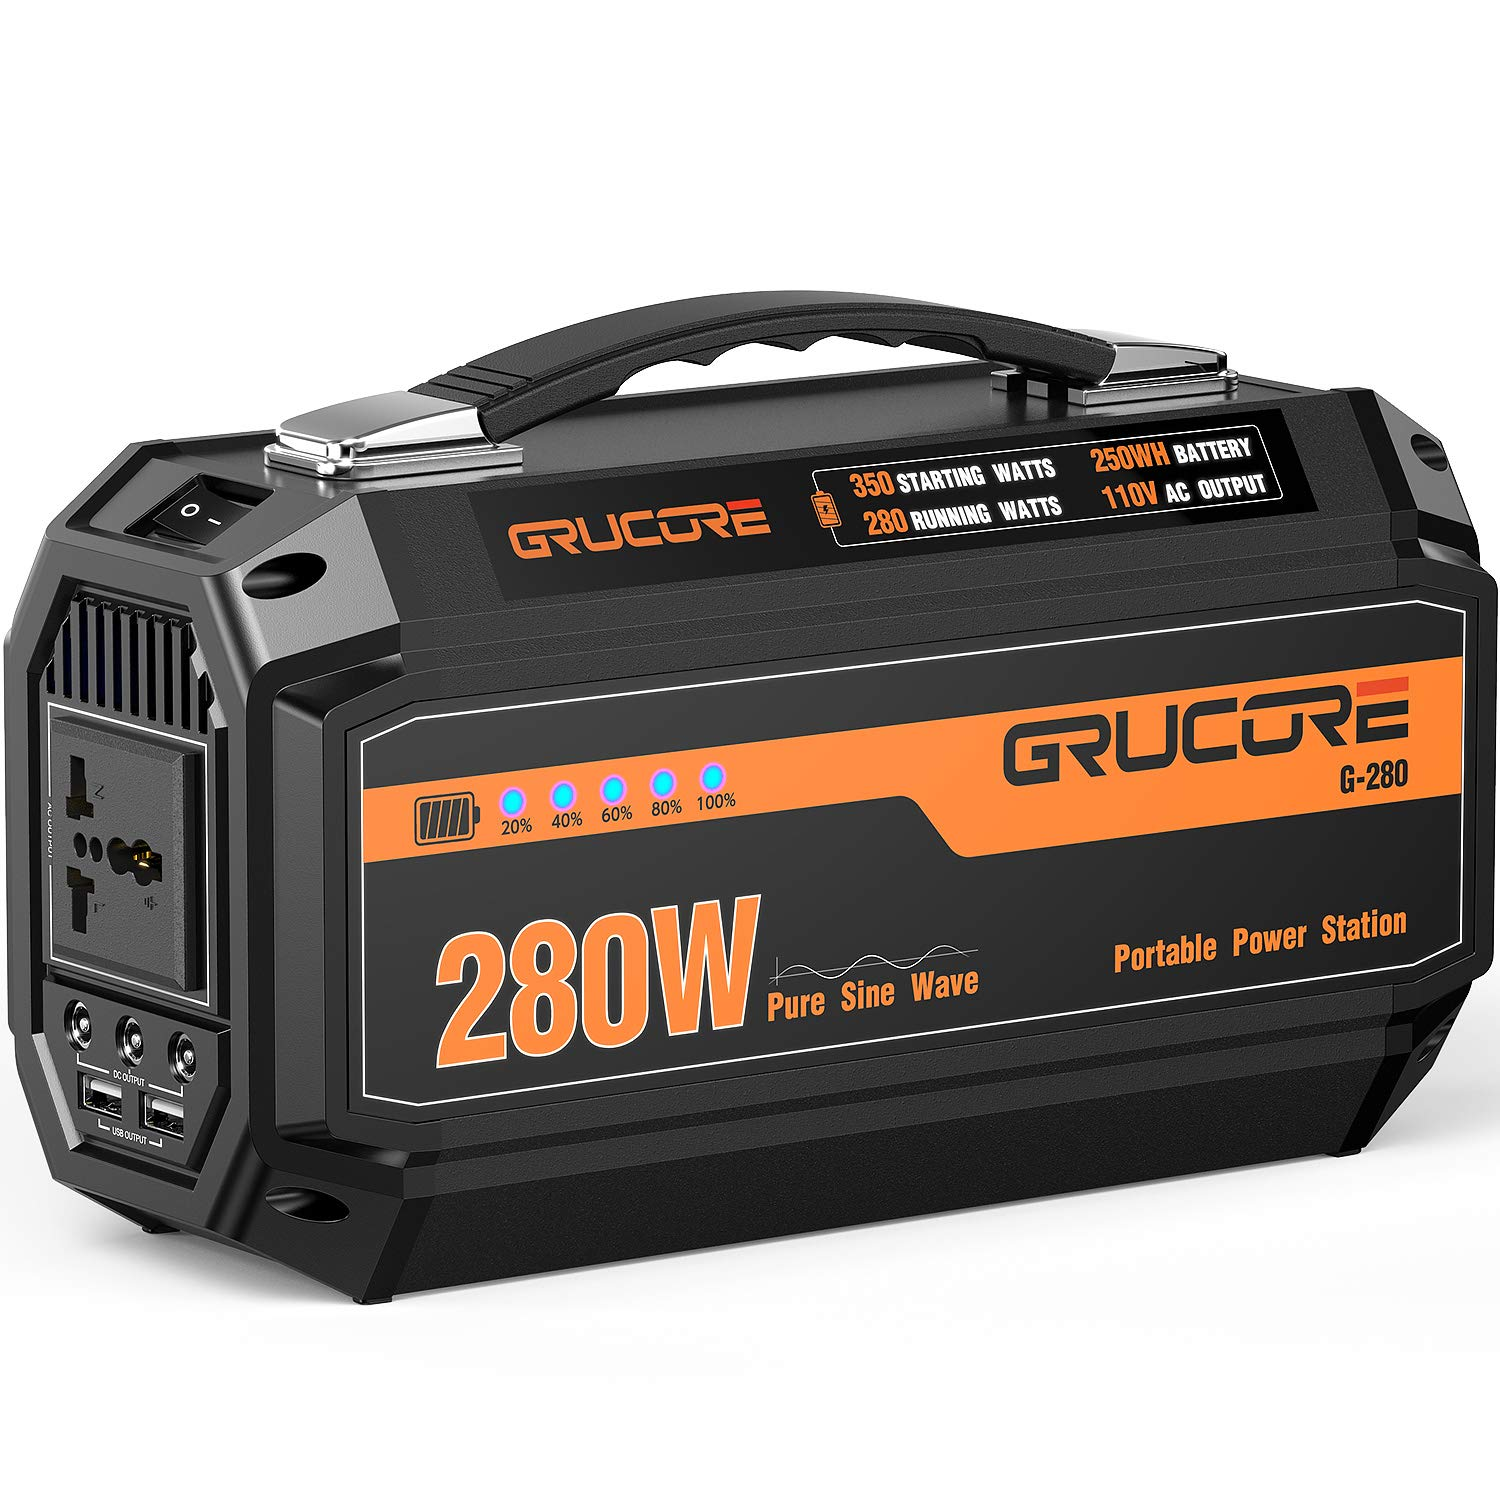 GRUCORE 280W Portable Power Station Generator, 250Wh CPAP Backup Battery, 110V Pure Sinewave AC Outlet, Solar Generator for Outdoors Camping Travel Fishing Hunting Emergency